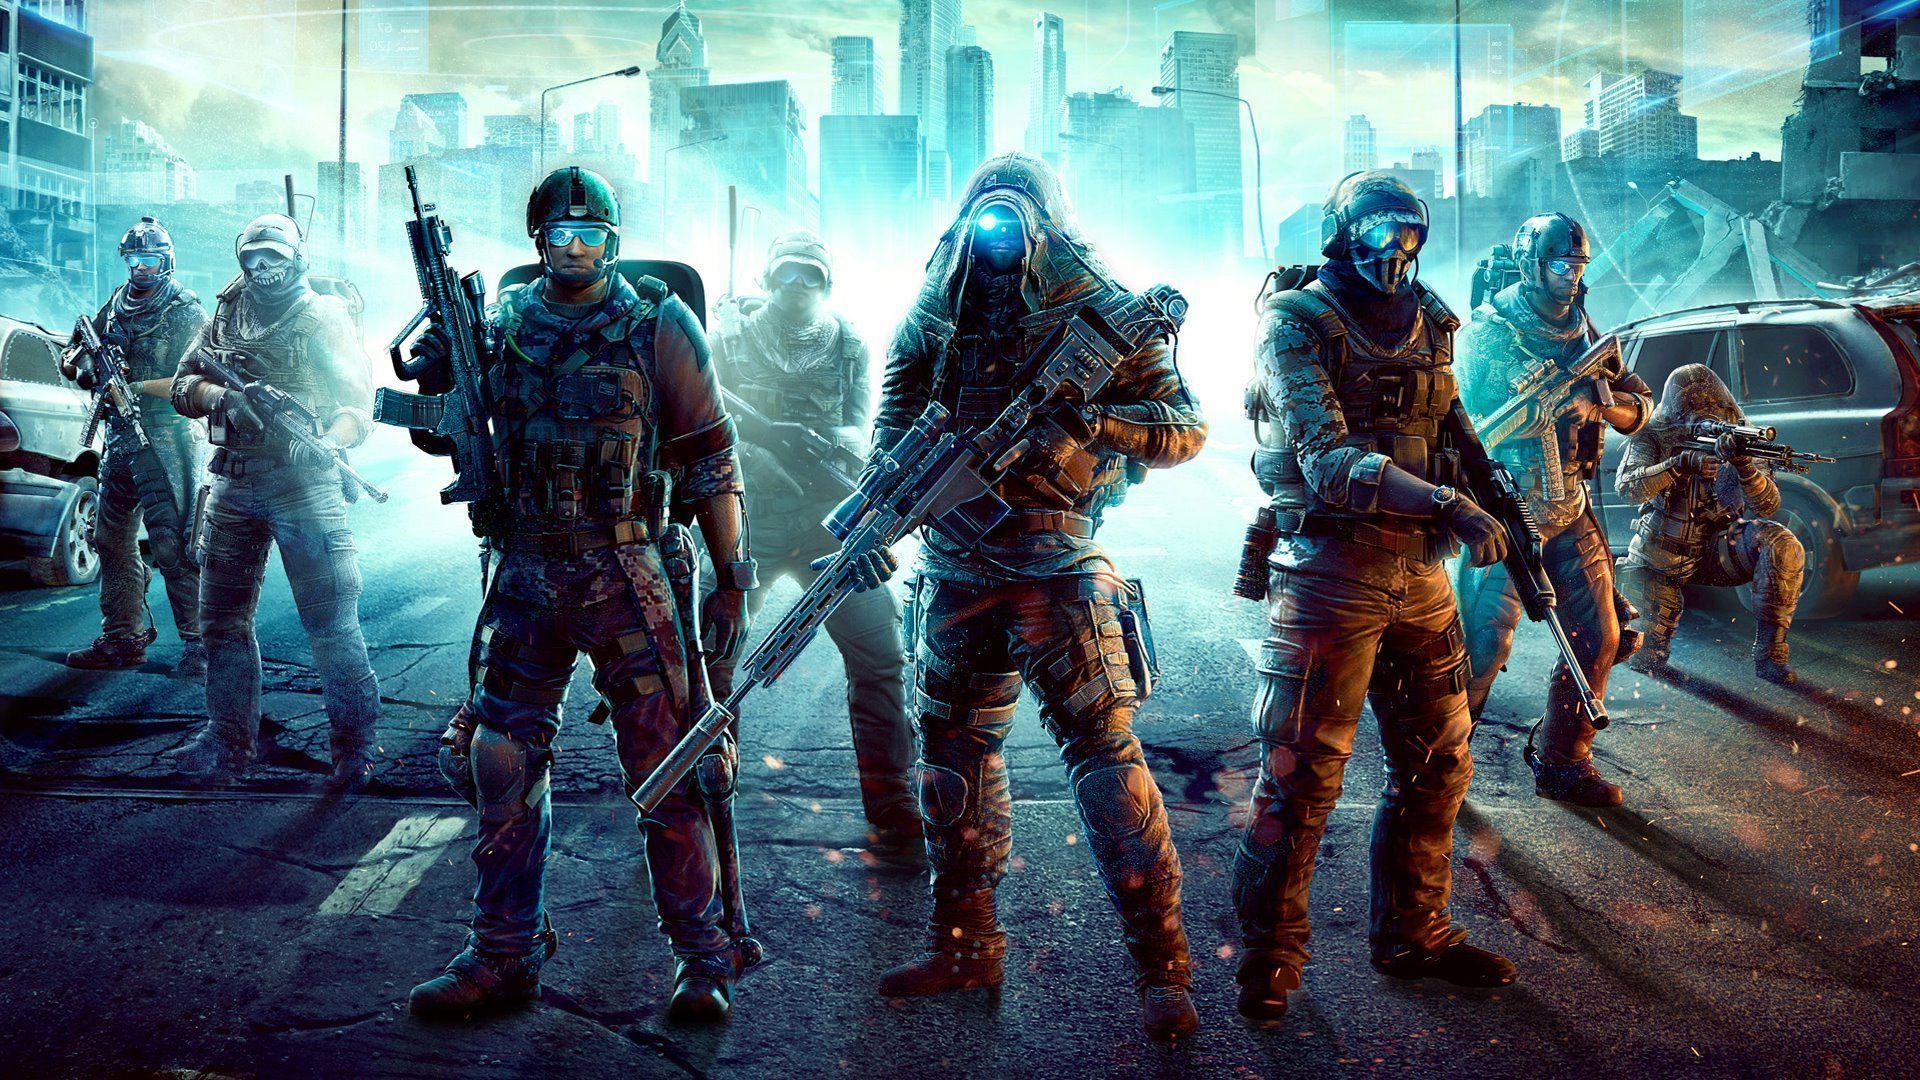 Ghost Recon Phantoms Wallpapers Adorable 42